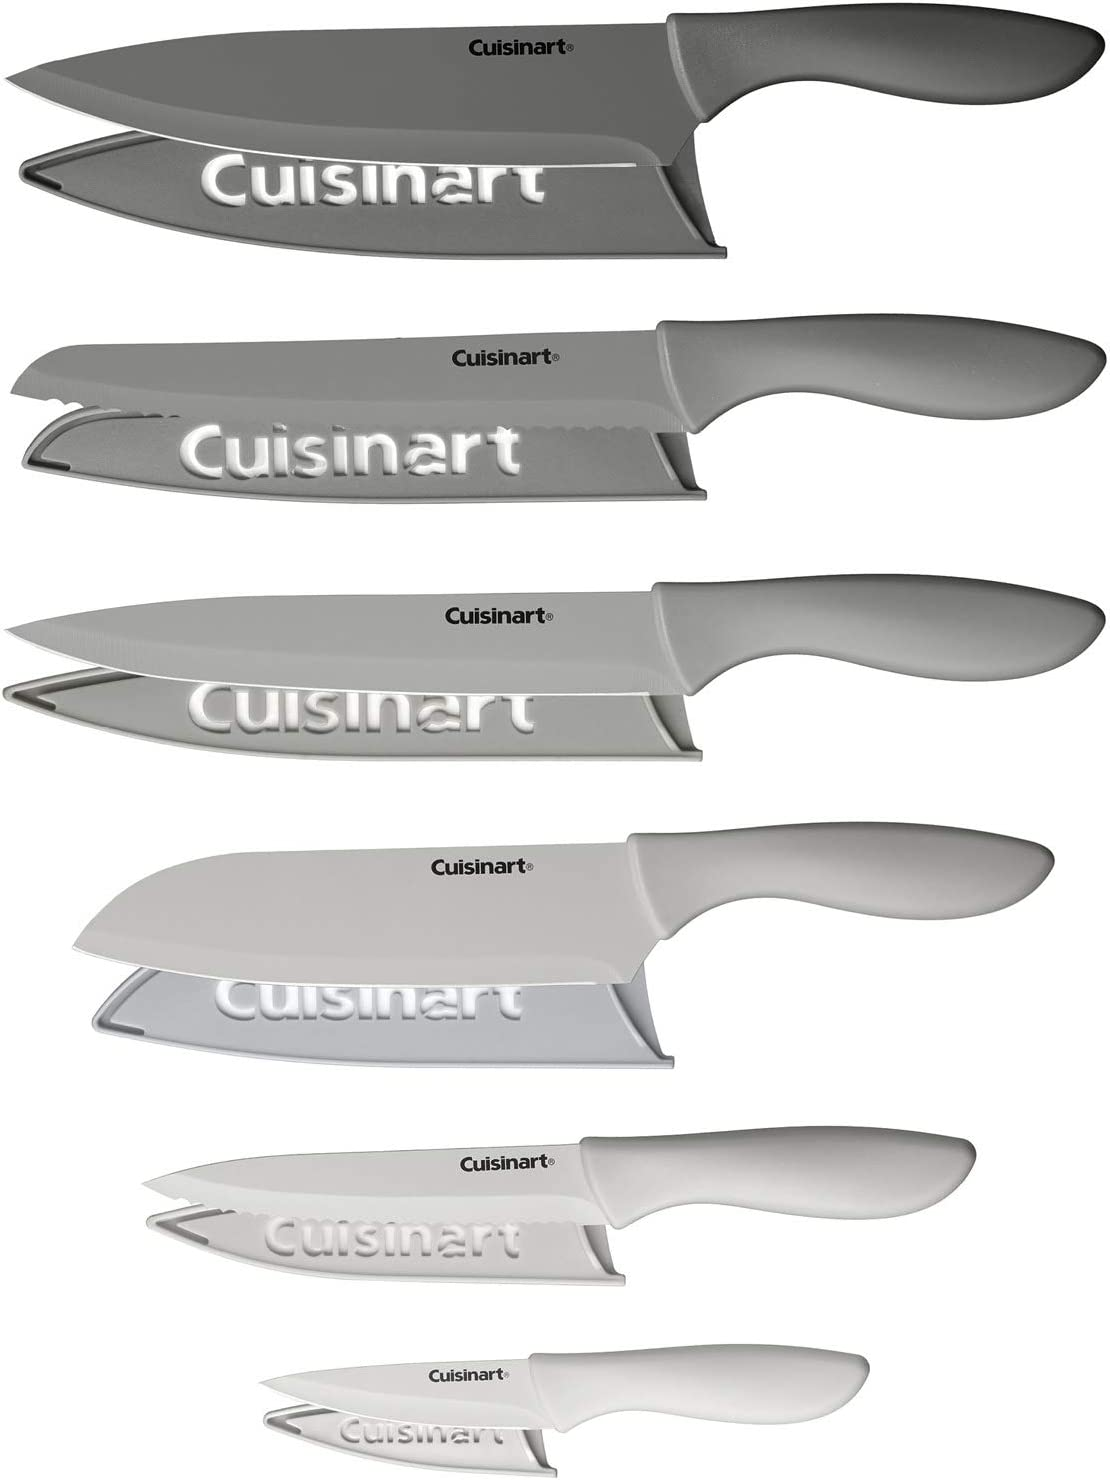 Cuisinart Advantage 12-Piece Gray Knife Set with Blade Guards C55-12PCG